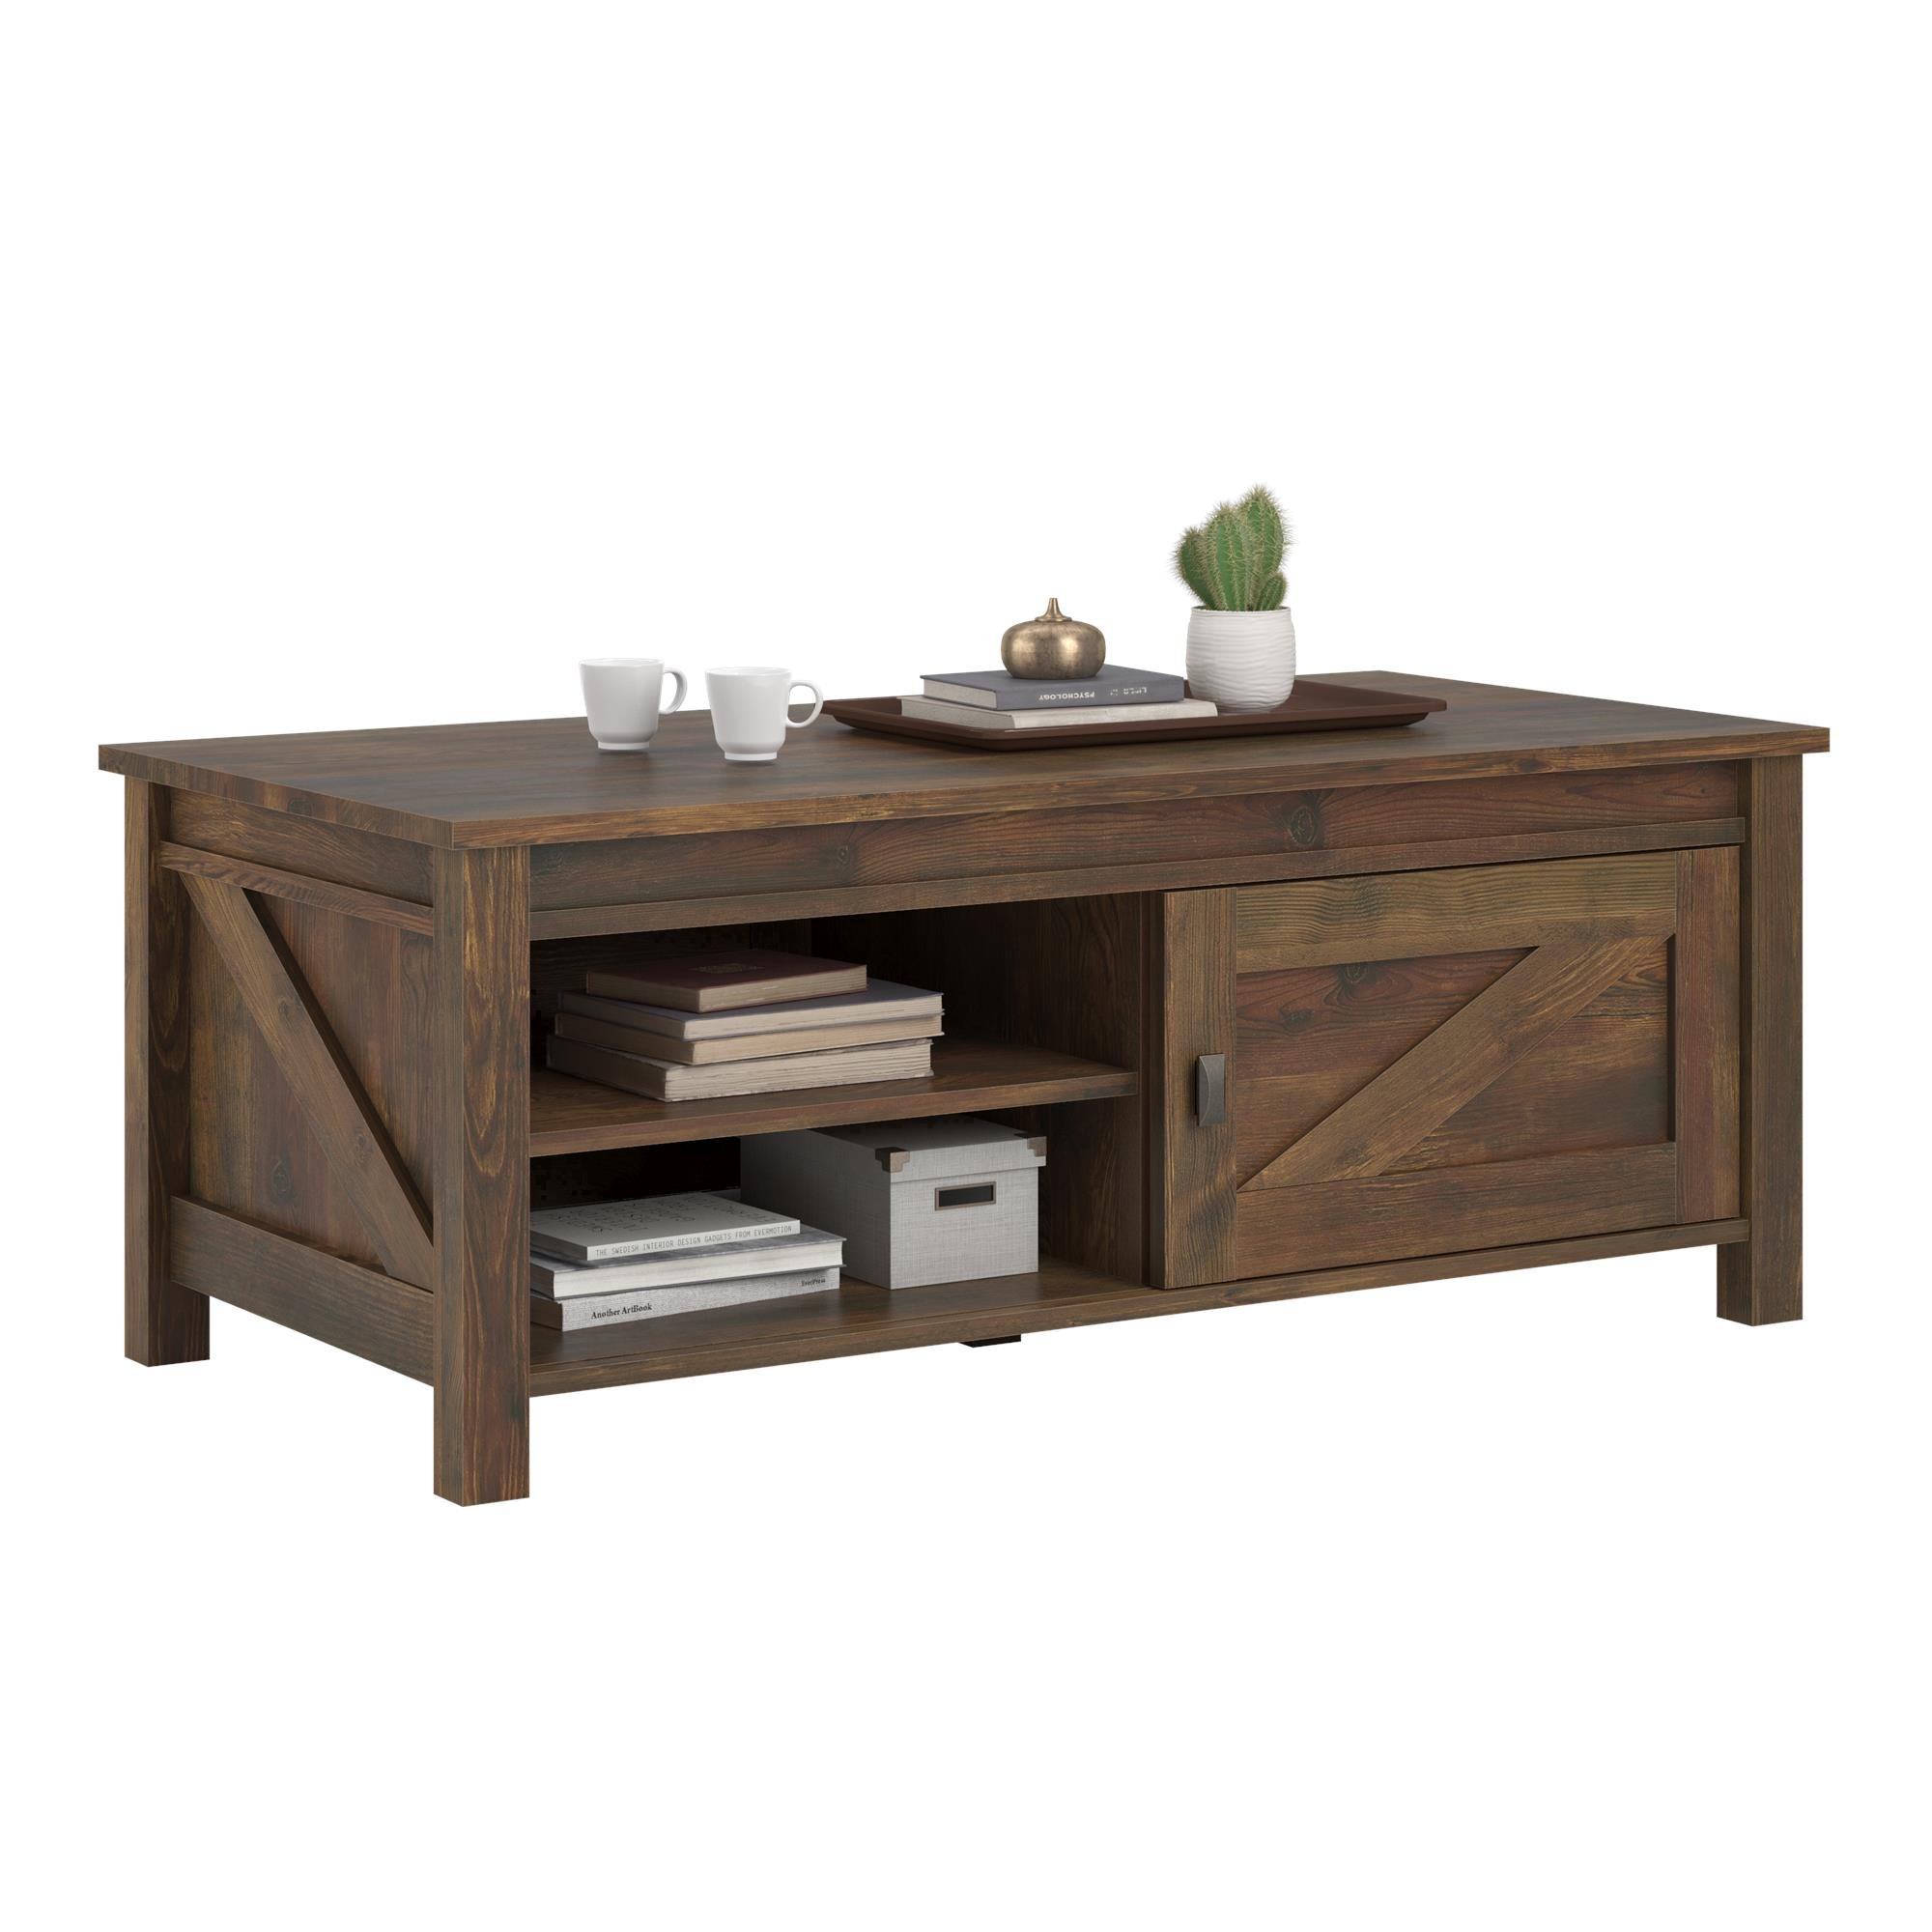 Ameriwood Home 5741215COM Farmington Coffee Table, Rustic by Ameriwood Home